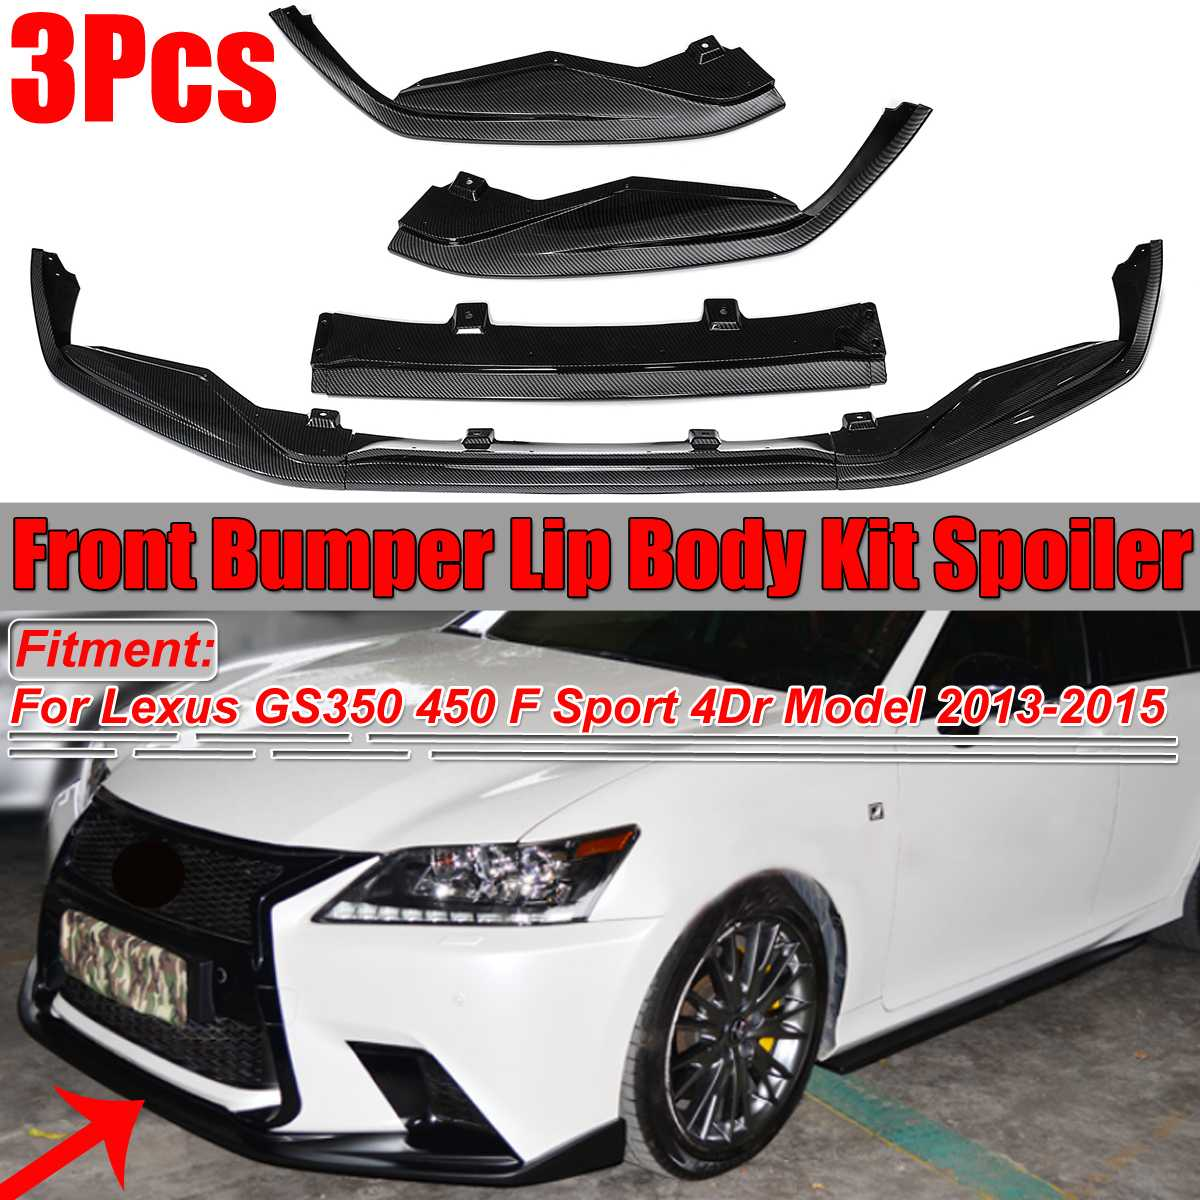 Carbon Fiber Look Car Front Bumper Lip Splitter Spoiler Cover Diffuser Trim For <font><b>Lexus</b></font> <font><b>GS350</b></font> 450 F Sport 4Dr Model 2013 <font><b>2014</b></font> 2015 image